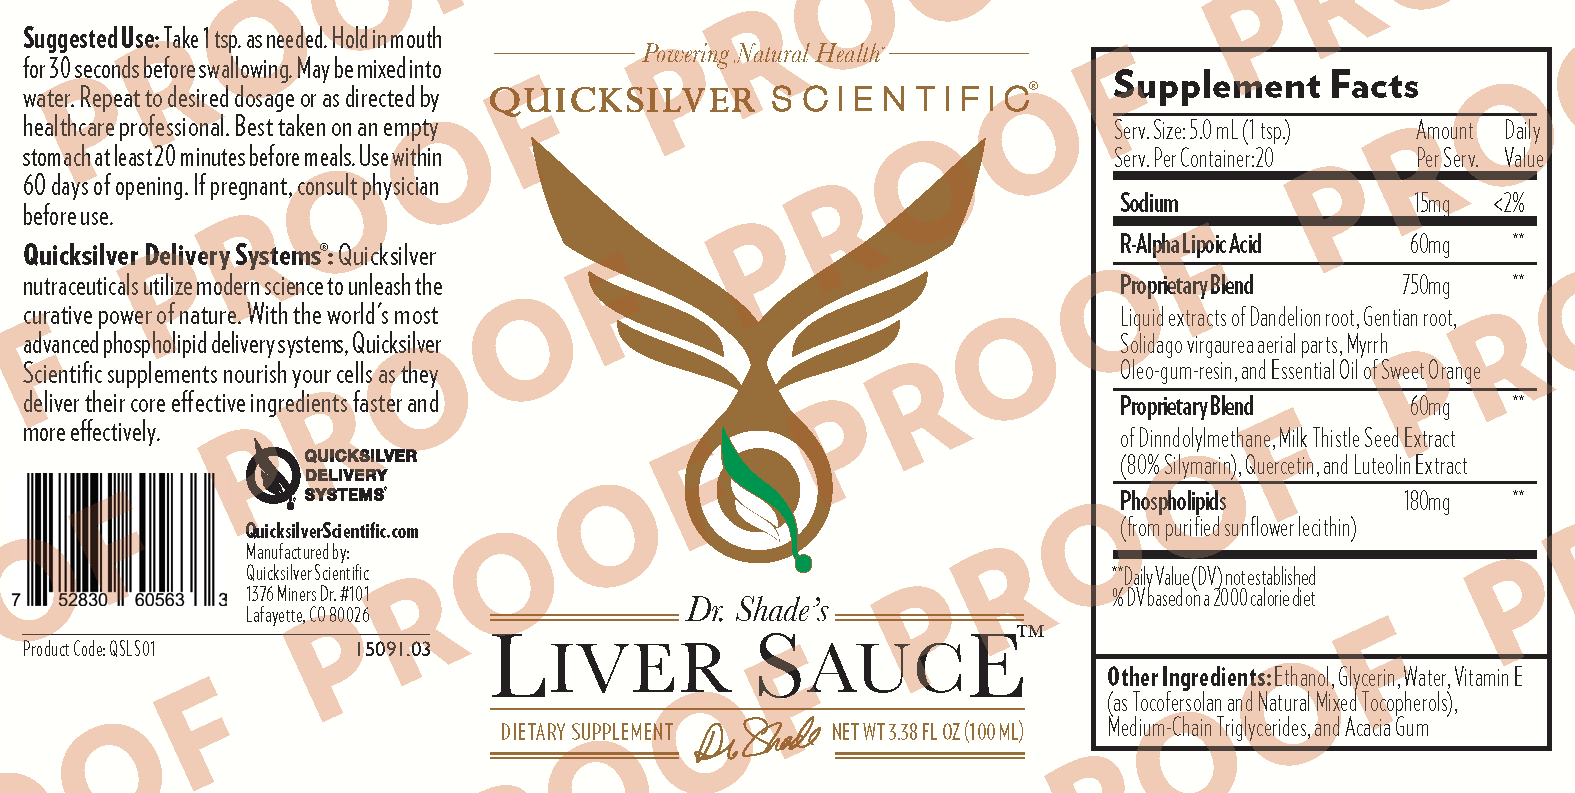 Liver Sauce 100ml Herbal Line 1509103 Hypothalamus 100 Vegicaps